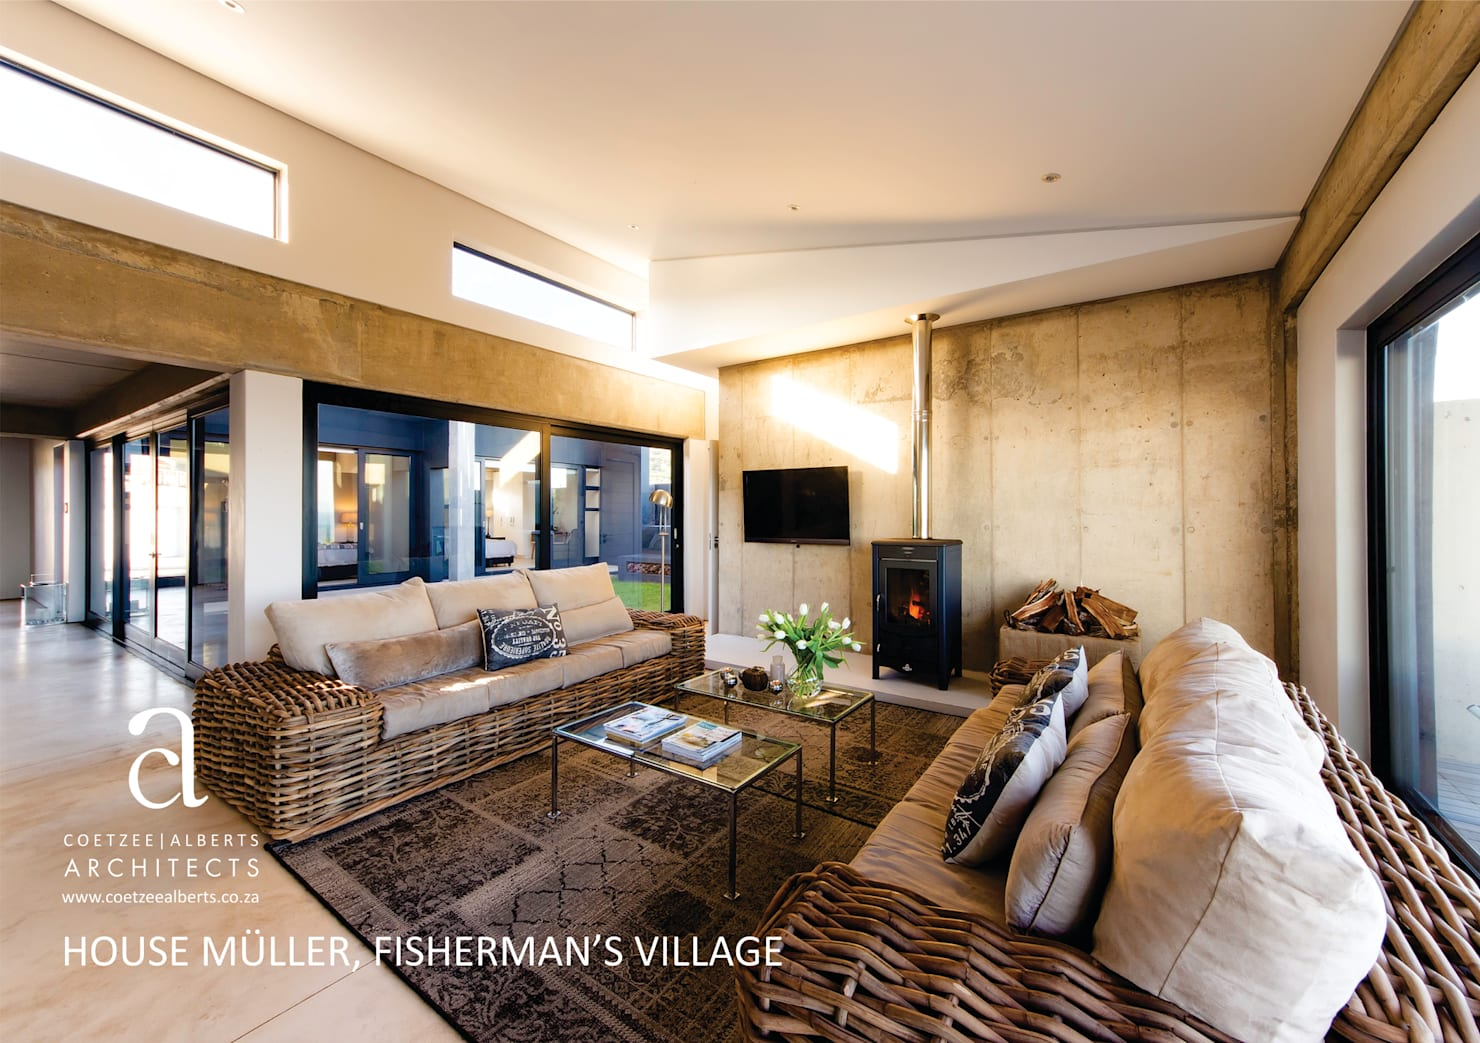 11 pictures of beautiful South African living rooms